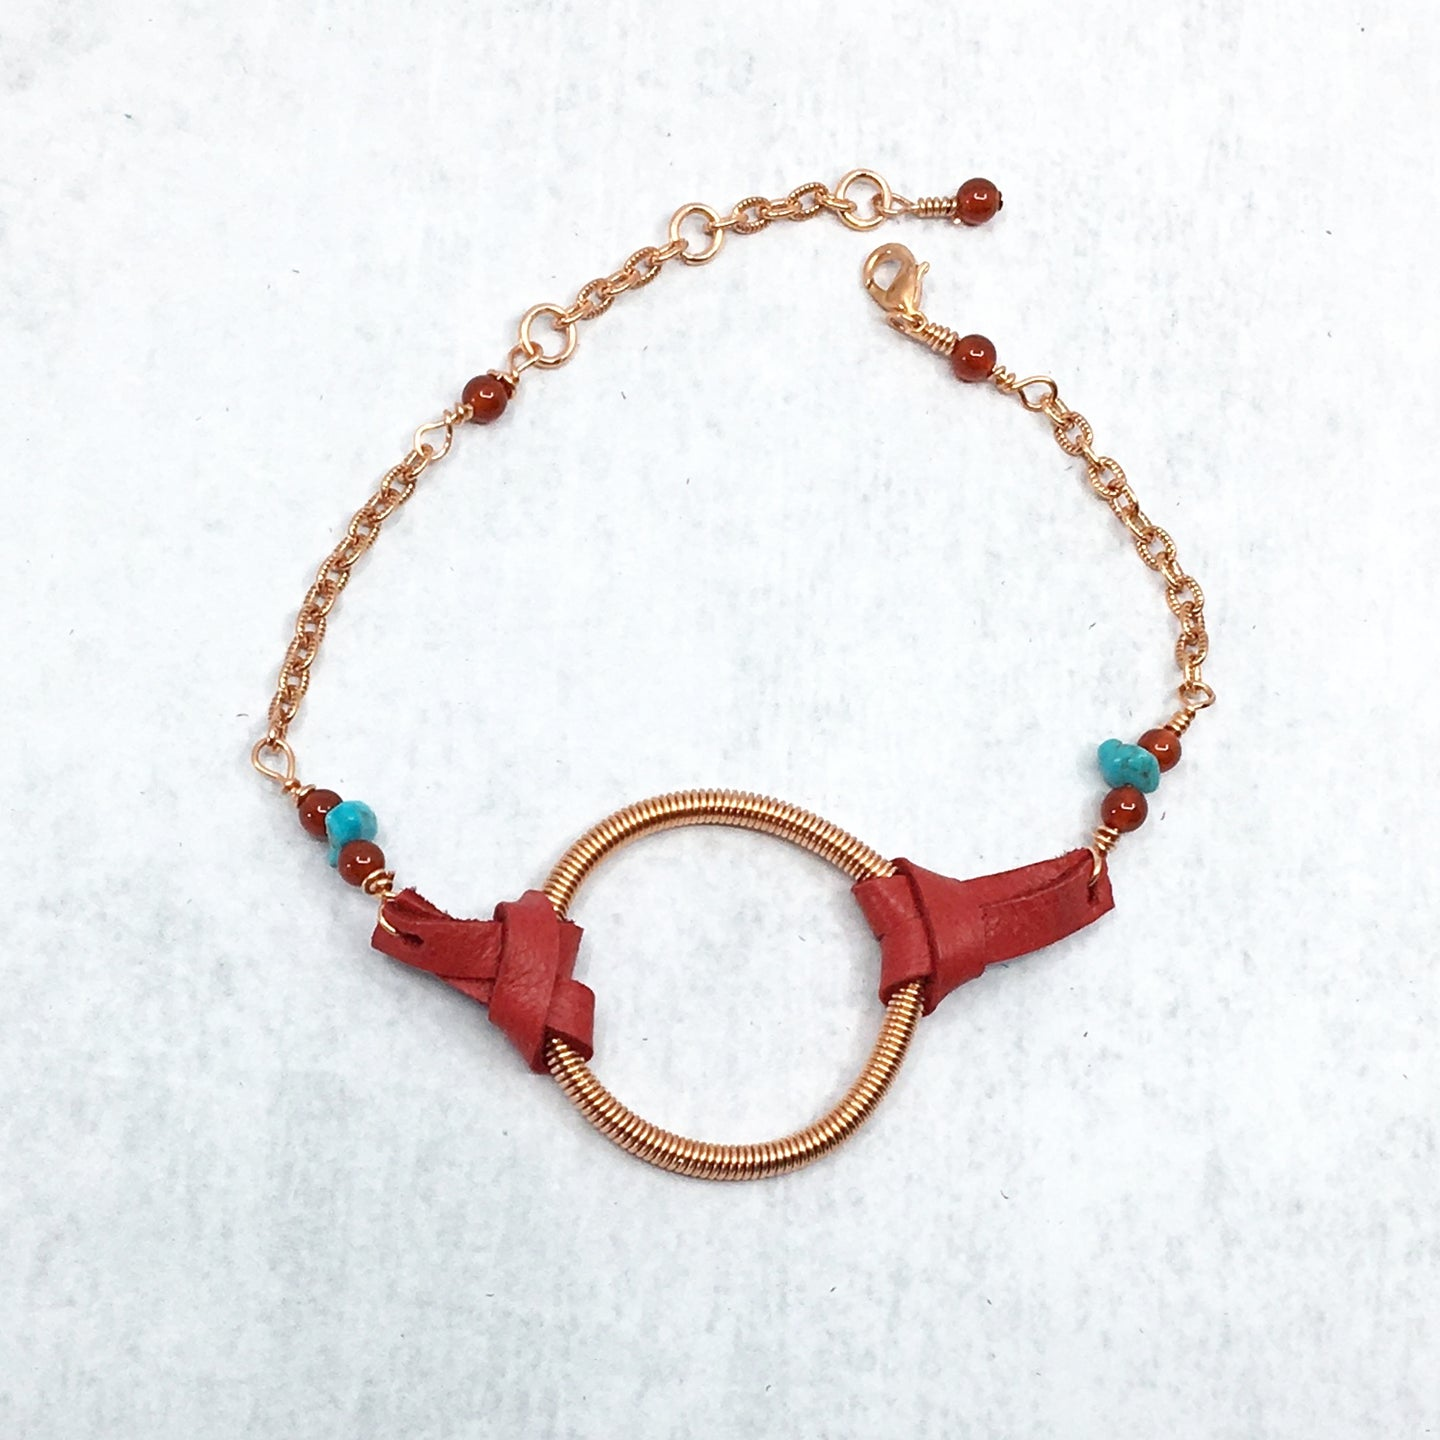 Dreamer Adjustable Bracelet with turquoise and red deer leather by Buckaroo Bling